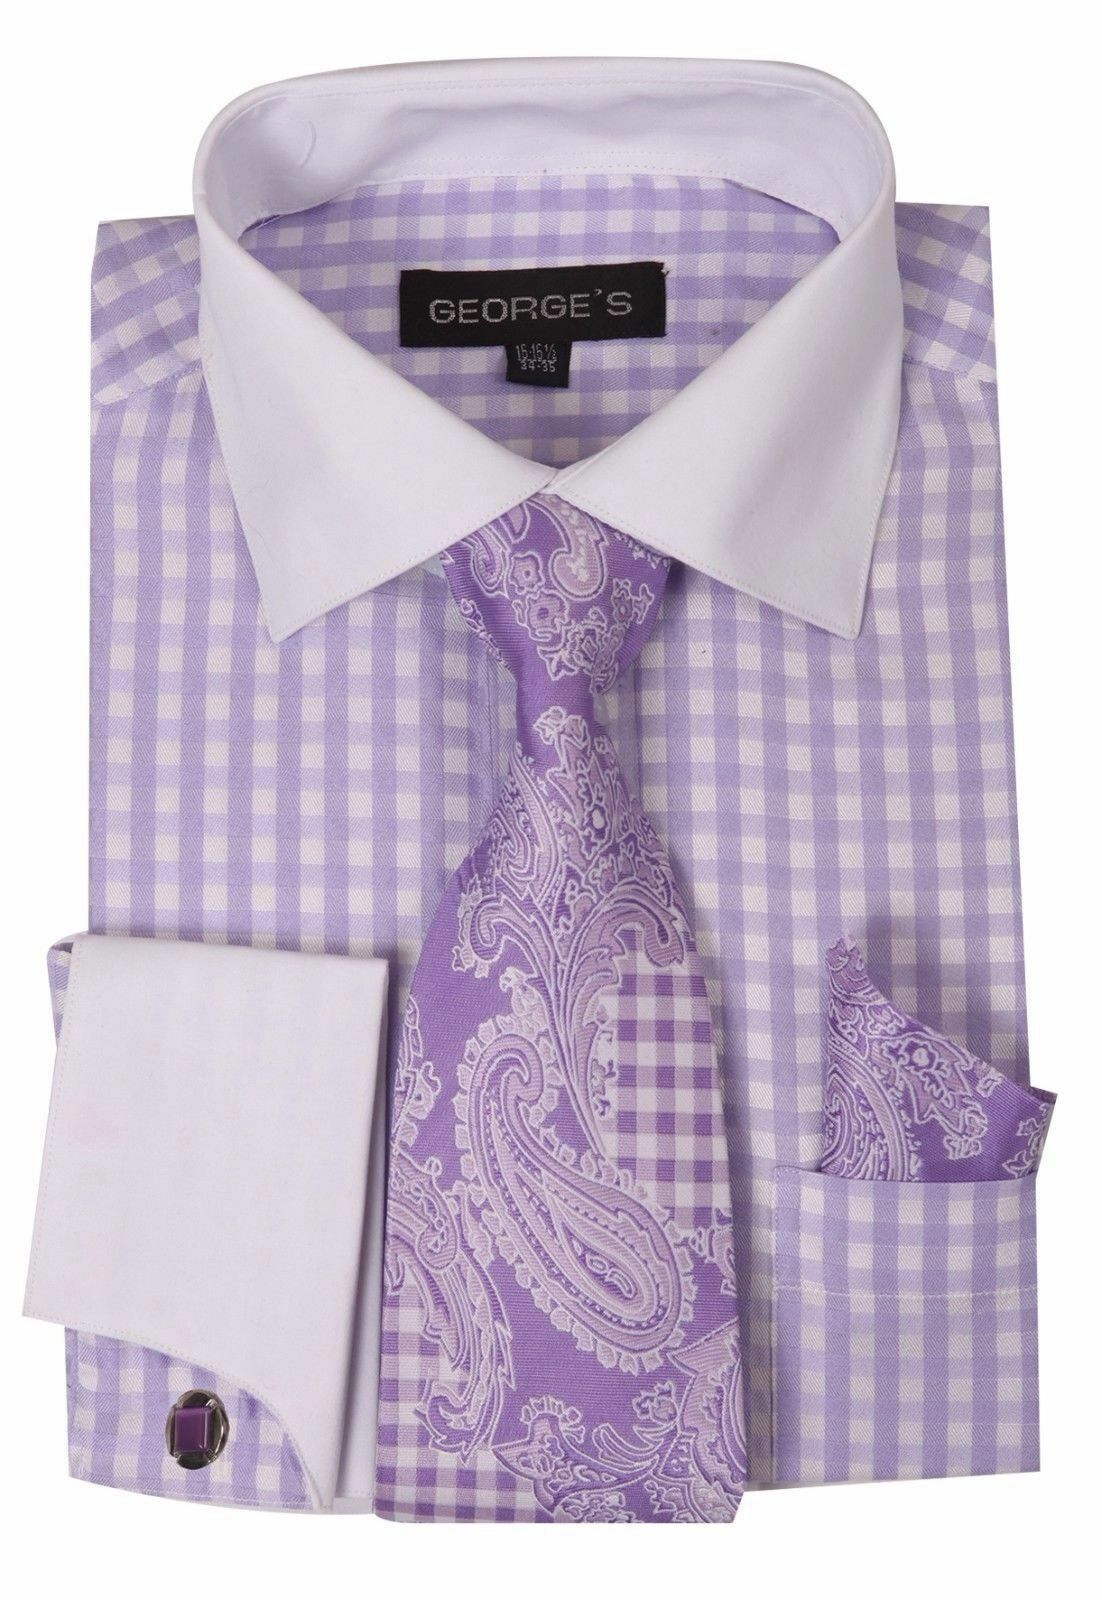 Checker French Cuff Dress Shirt With Cuff Links Paisley